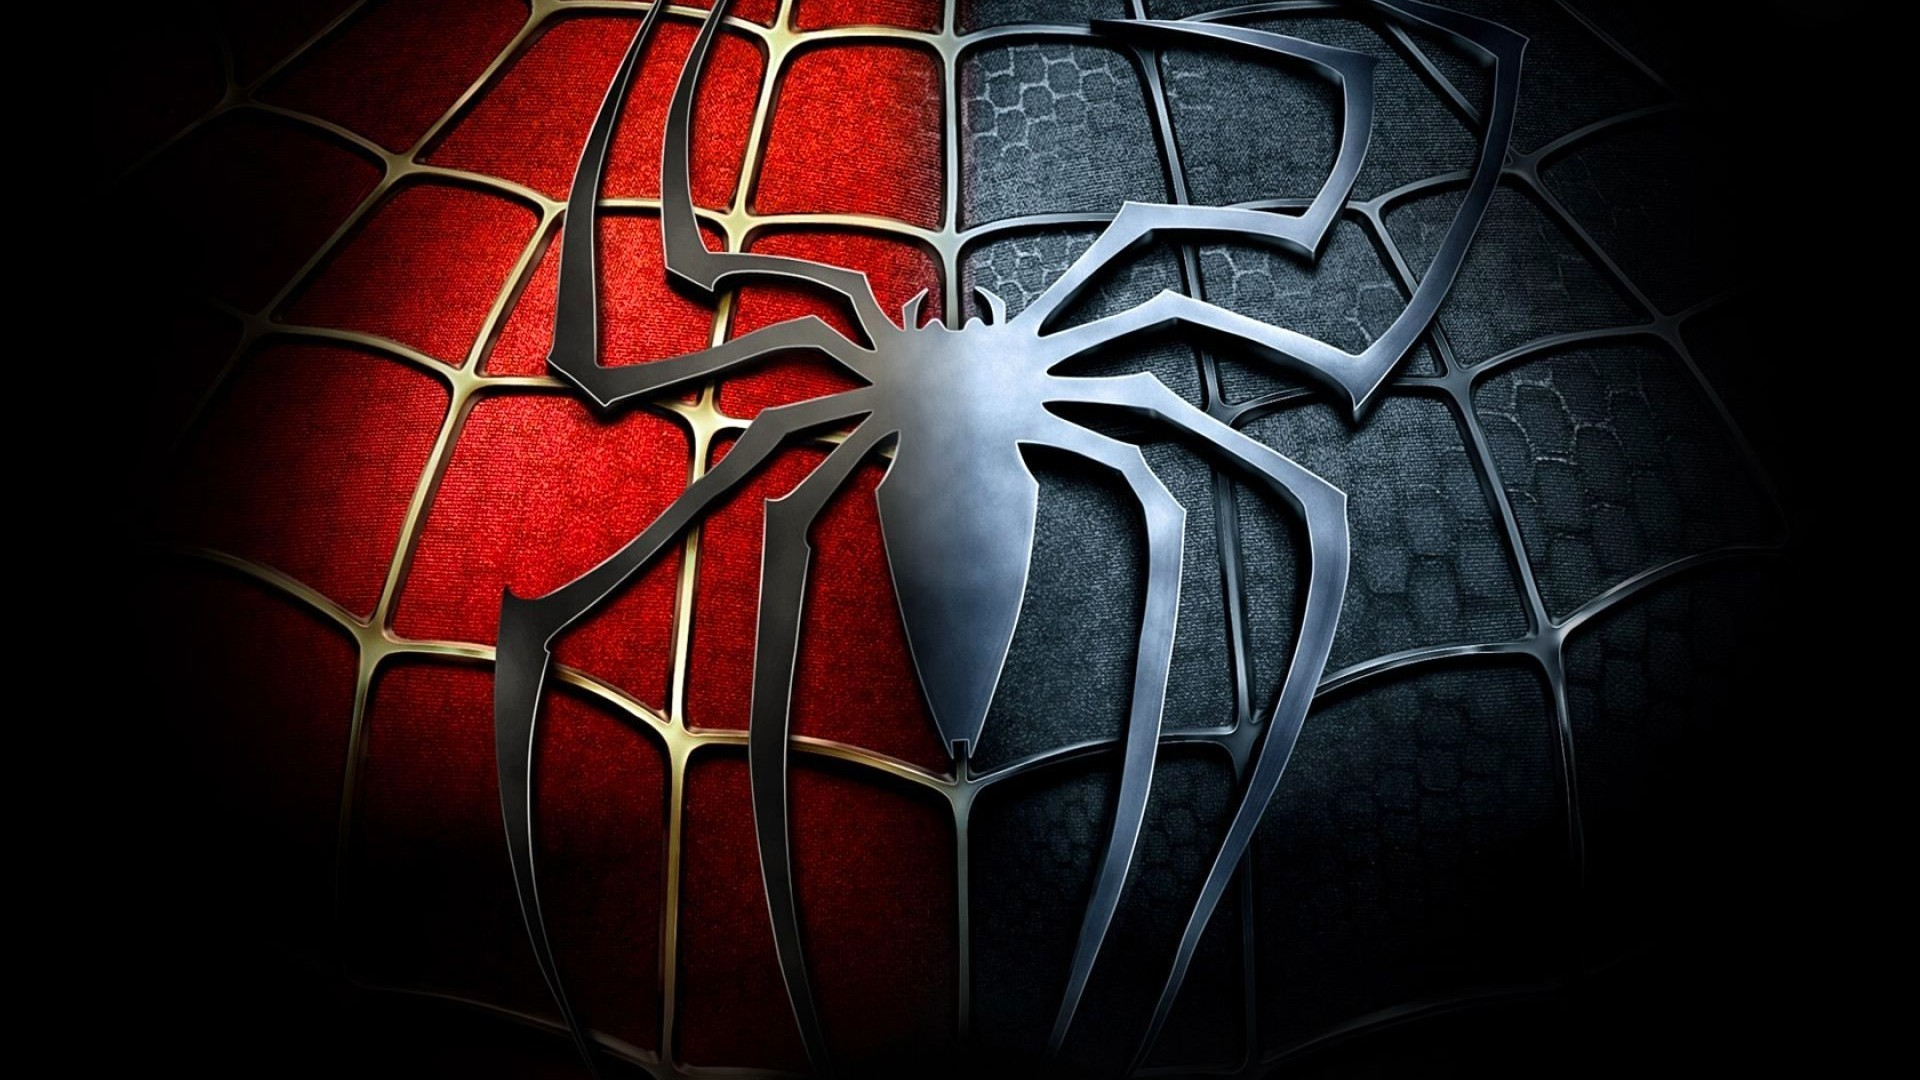 Res: 1920x1080, Spiderman Logo Wallpaper Mobile #RSL